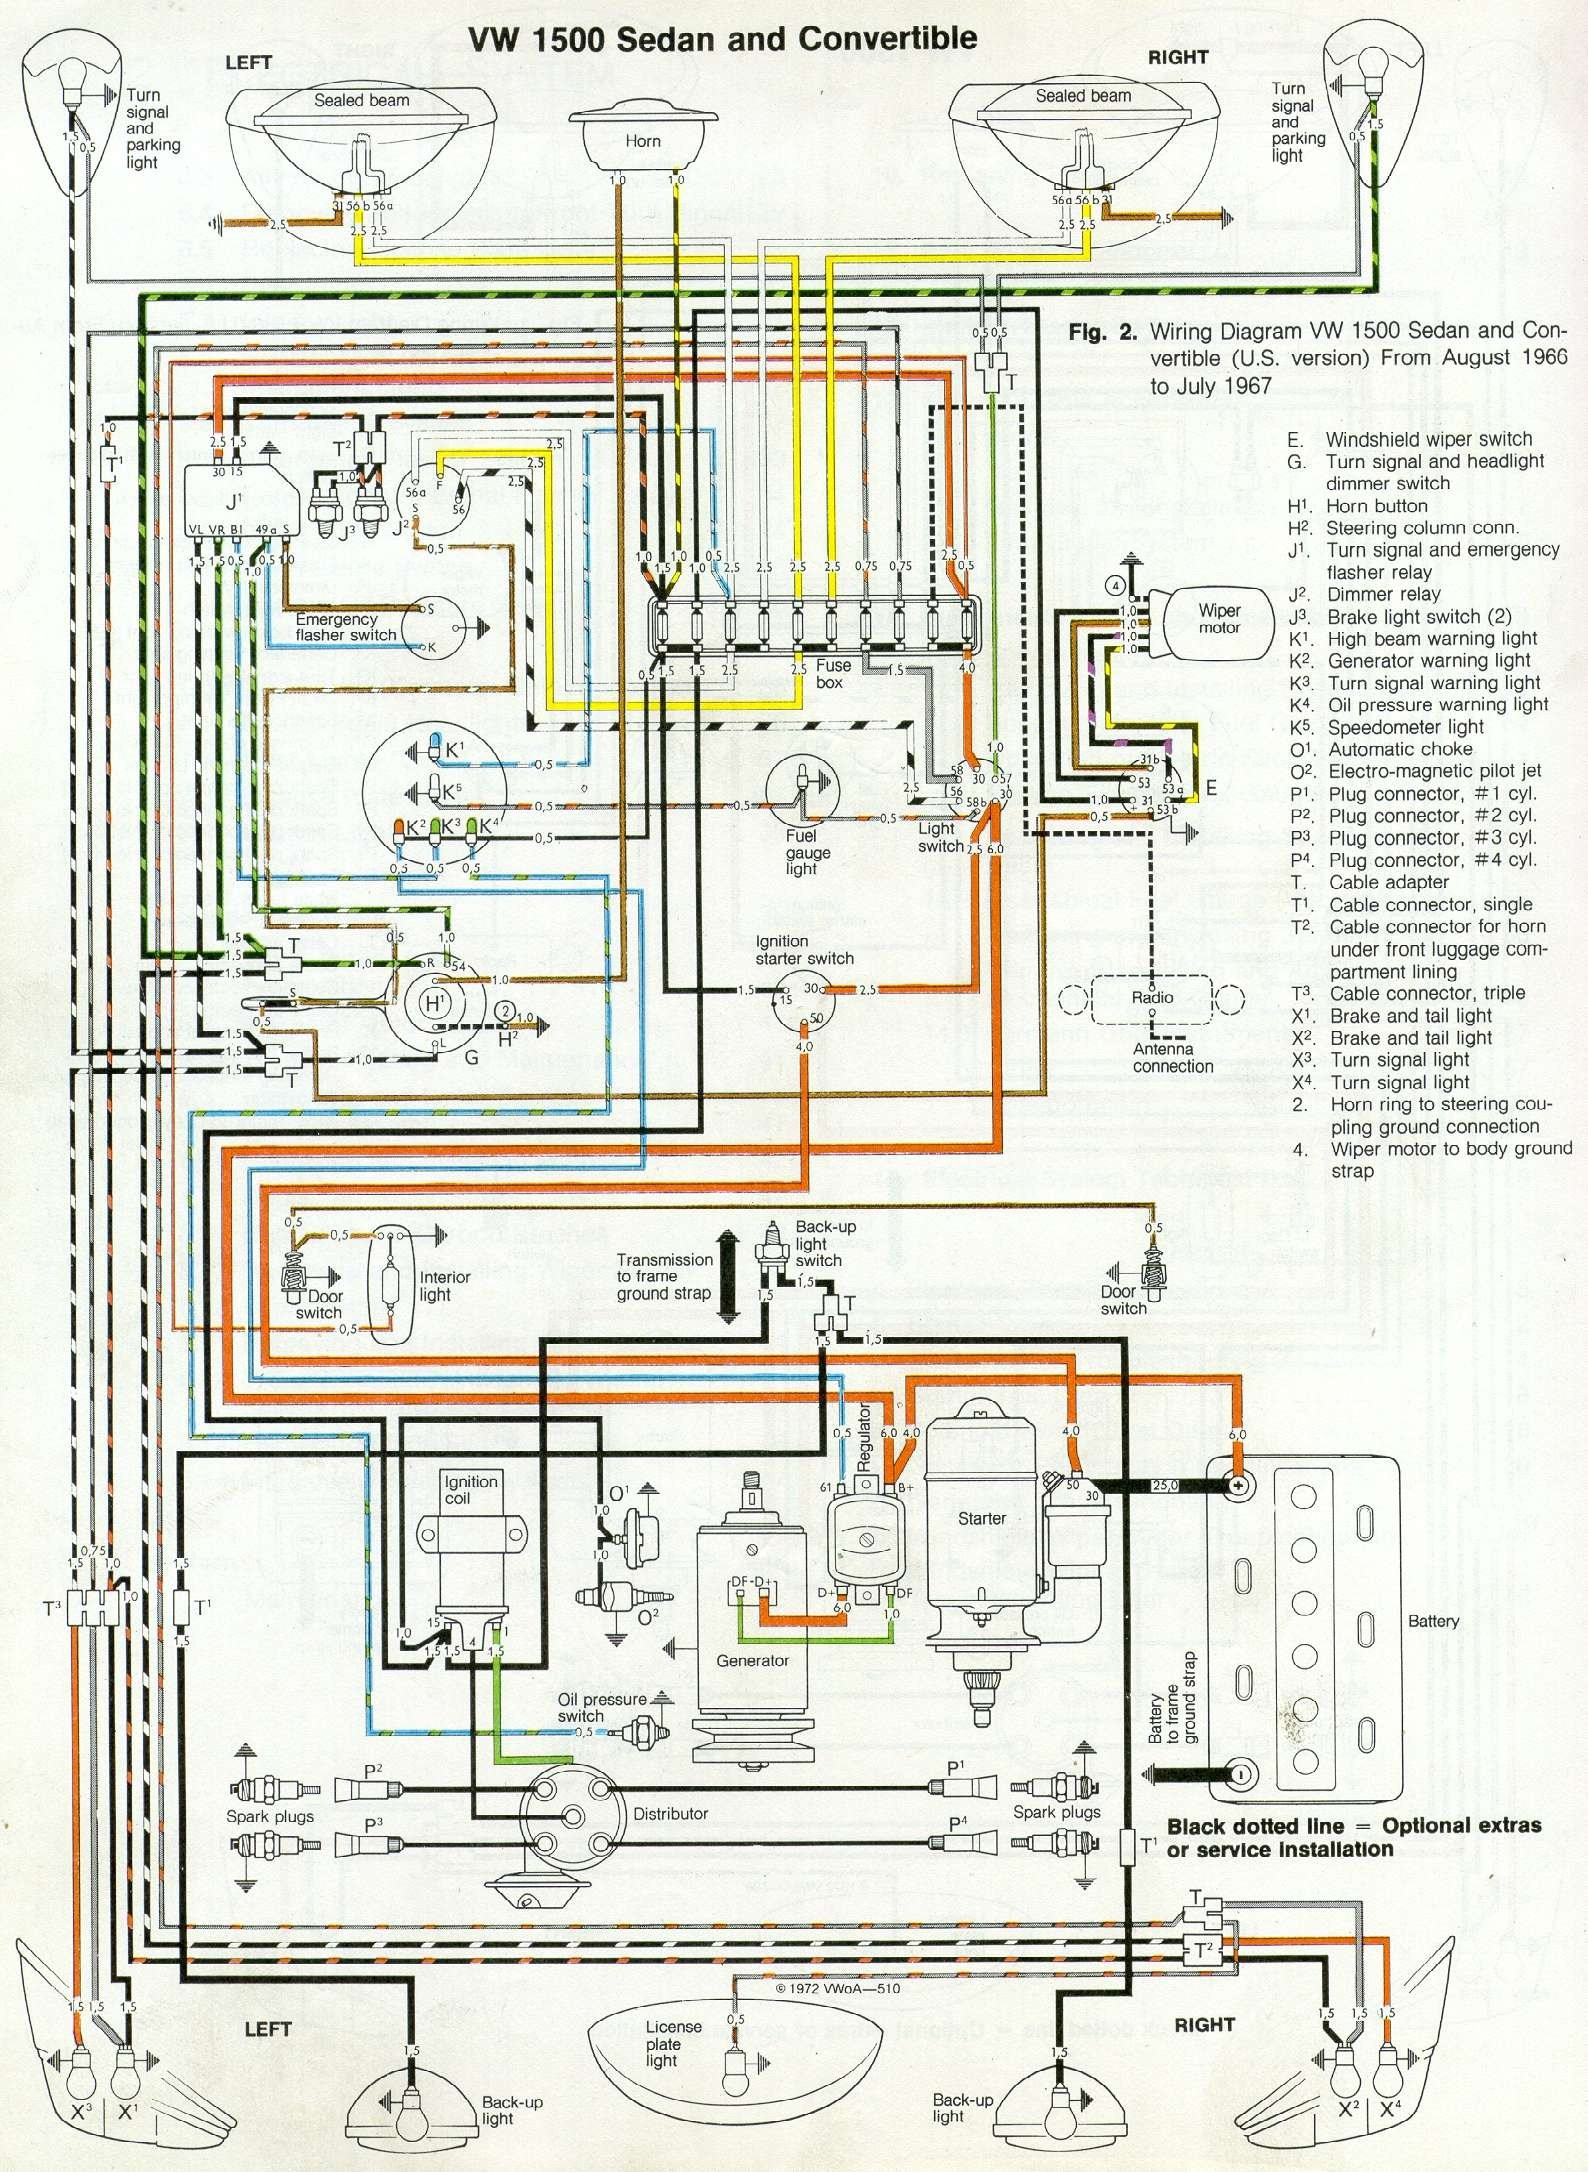 1966 Vw Wiring Diagram - Wiring Diagram Progresif  Vw Bug Wiring Diagrams on 1972 vw beetle fuse box diagram, 1966 chevrolet impala wiring diagram, 12 volt switch wiring diagram, 1966 chevy impala wiring diagram, vw kit car wiring diagram, 1966 ford wiring diagram, 1965 vw wiring diagram, 1966 porsche wiring diagram, 67 vw wiring diagram, 1972 vw beetle engine diagram, 69 beetle wiring diagram, vw engine wiring diagram, 1966 mustang wiring diagram, 1968 vw beetle engine diagram, vw beetle wiring diagram, classic beetle wiring diagram, 1966 pontiac gto wiring diagram, 1966 corvette wiring diagram, 1974 super beetle wiring diagram, 1956 vw wiring diagram,